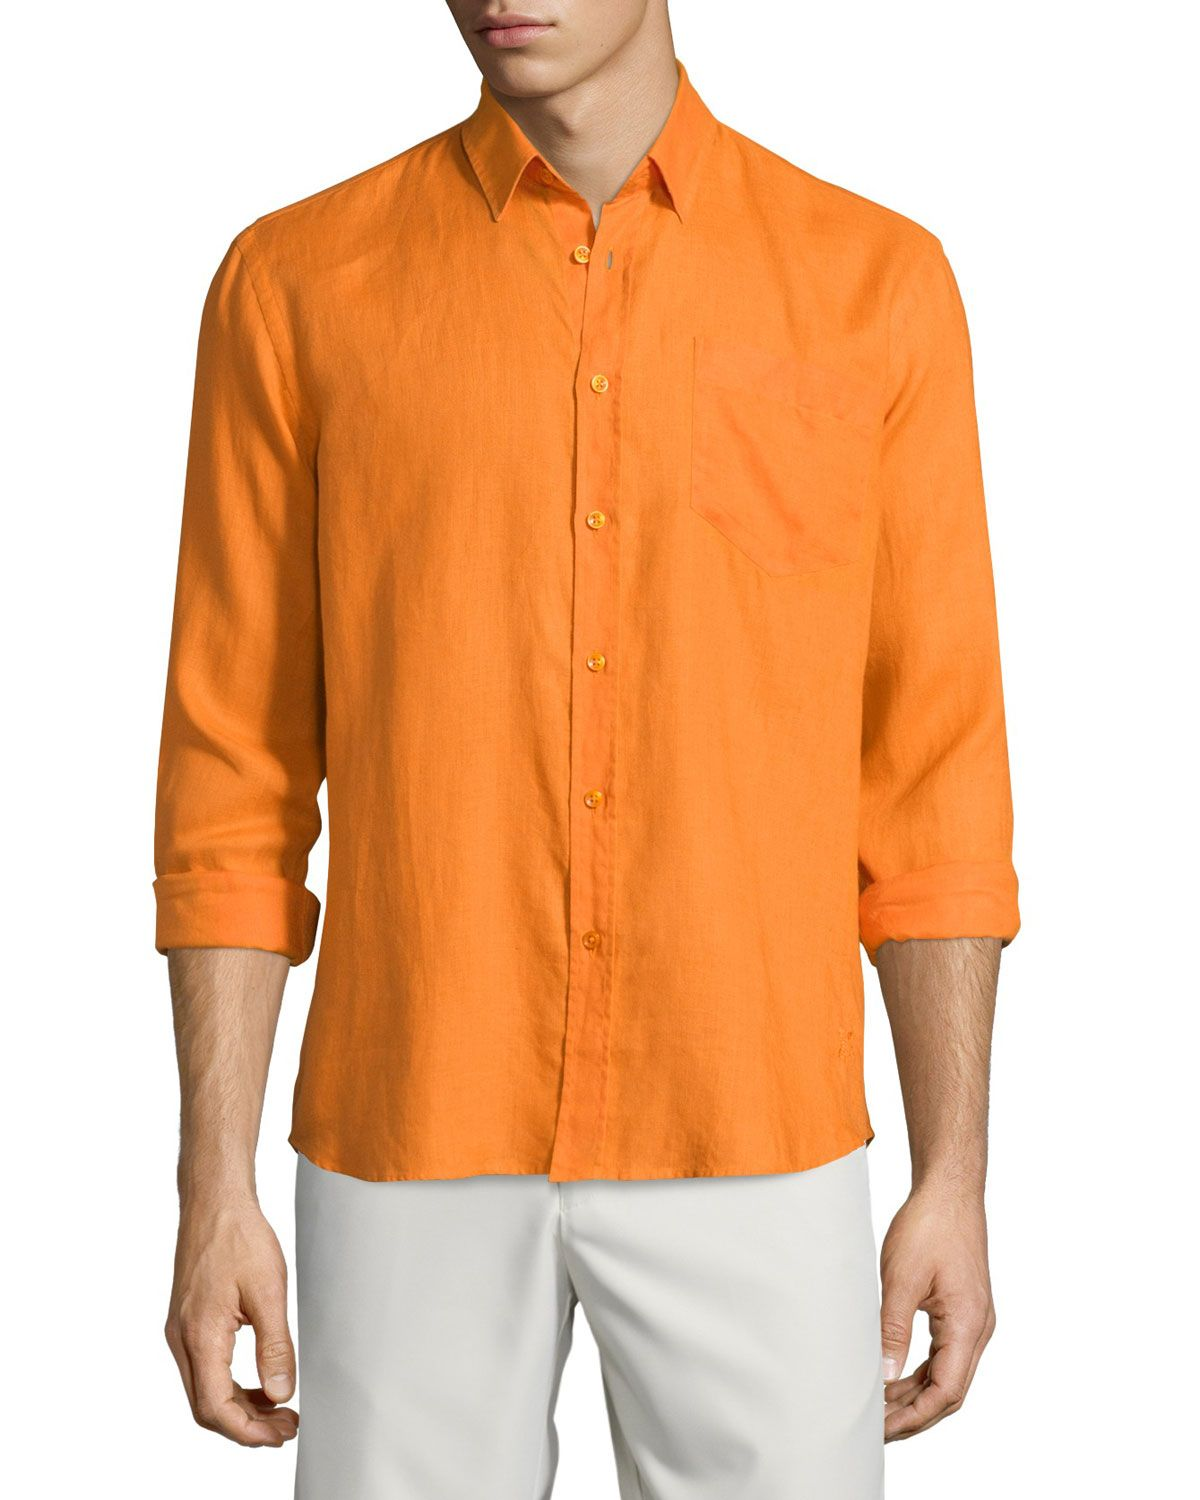 Caroubier Linen Long-Sleeve Shirt, Orange, Men's, Size: XXXL ...